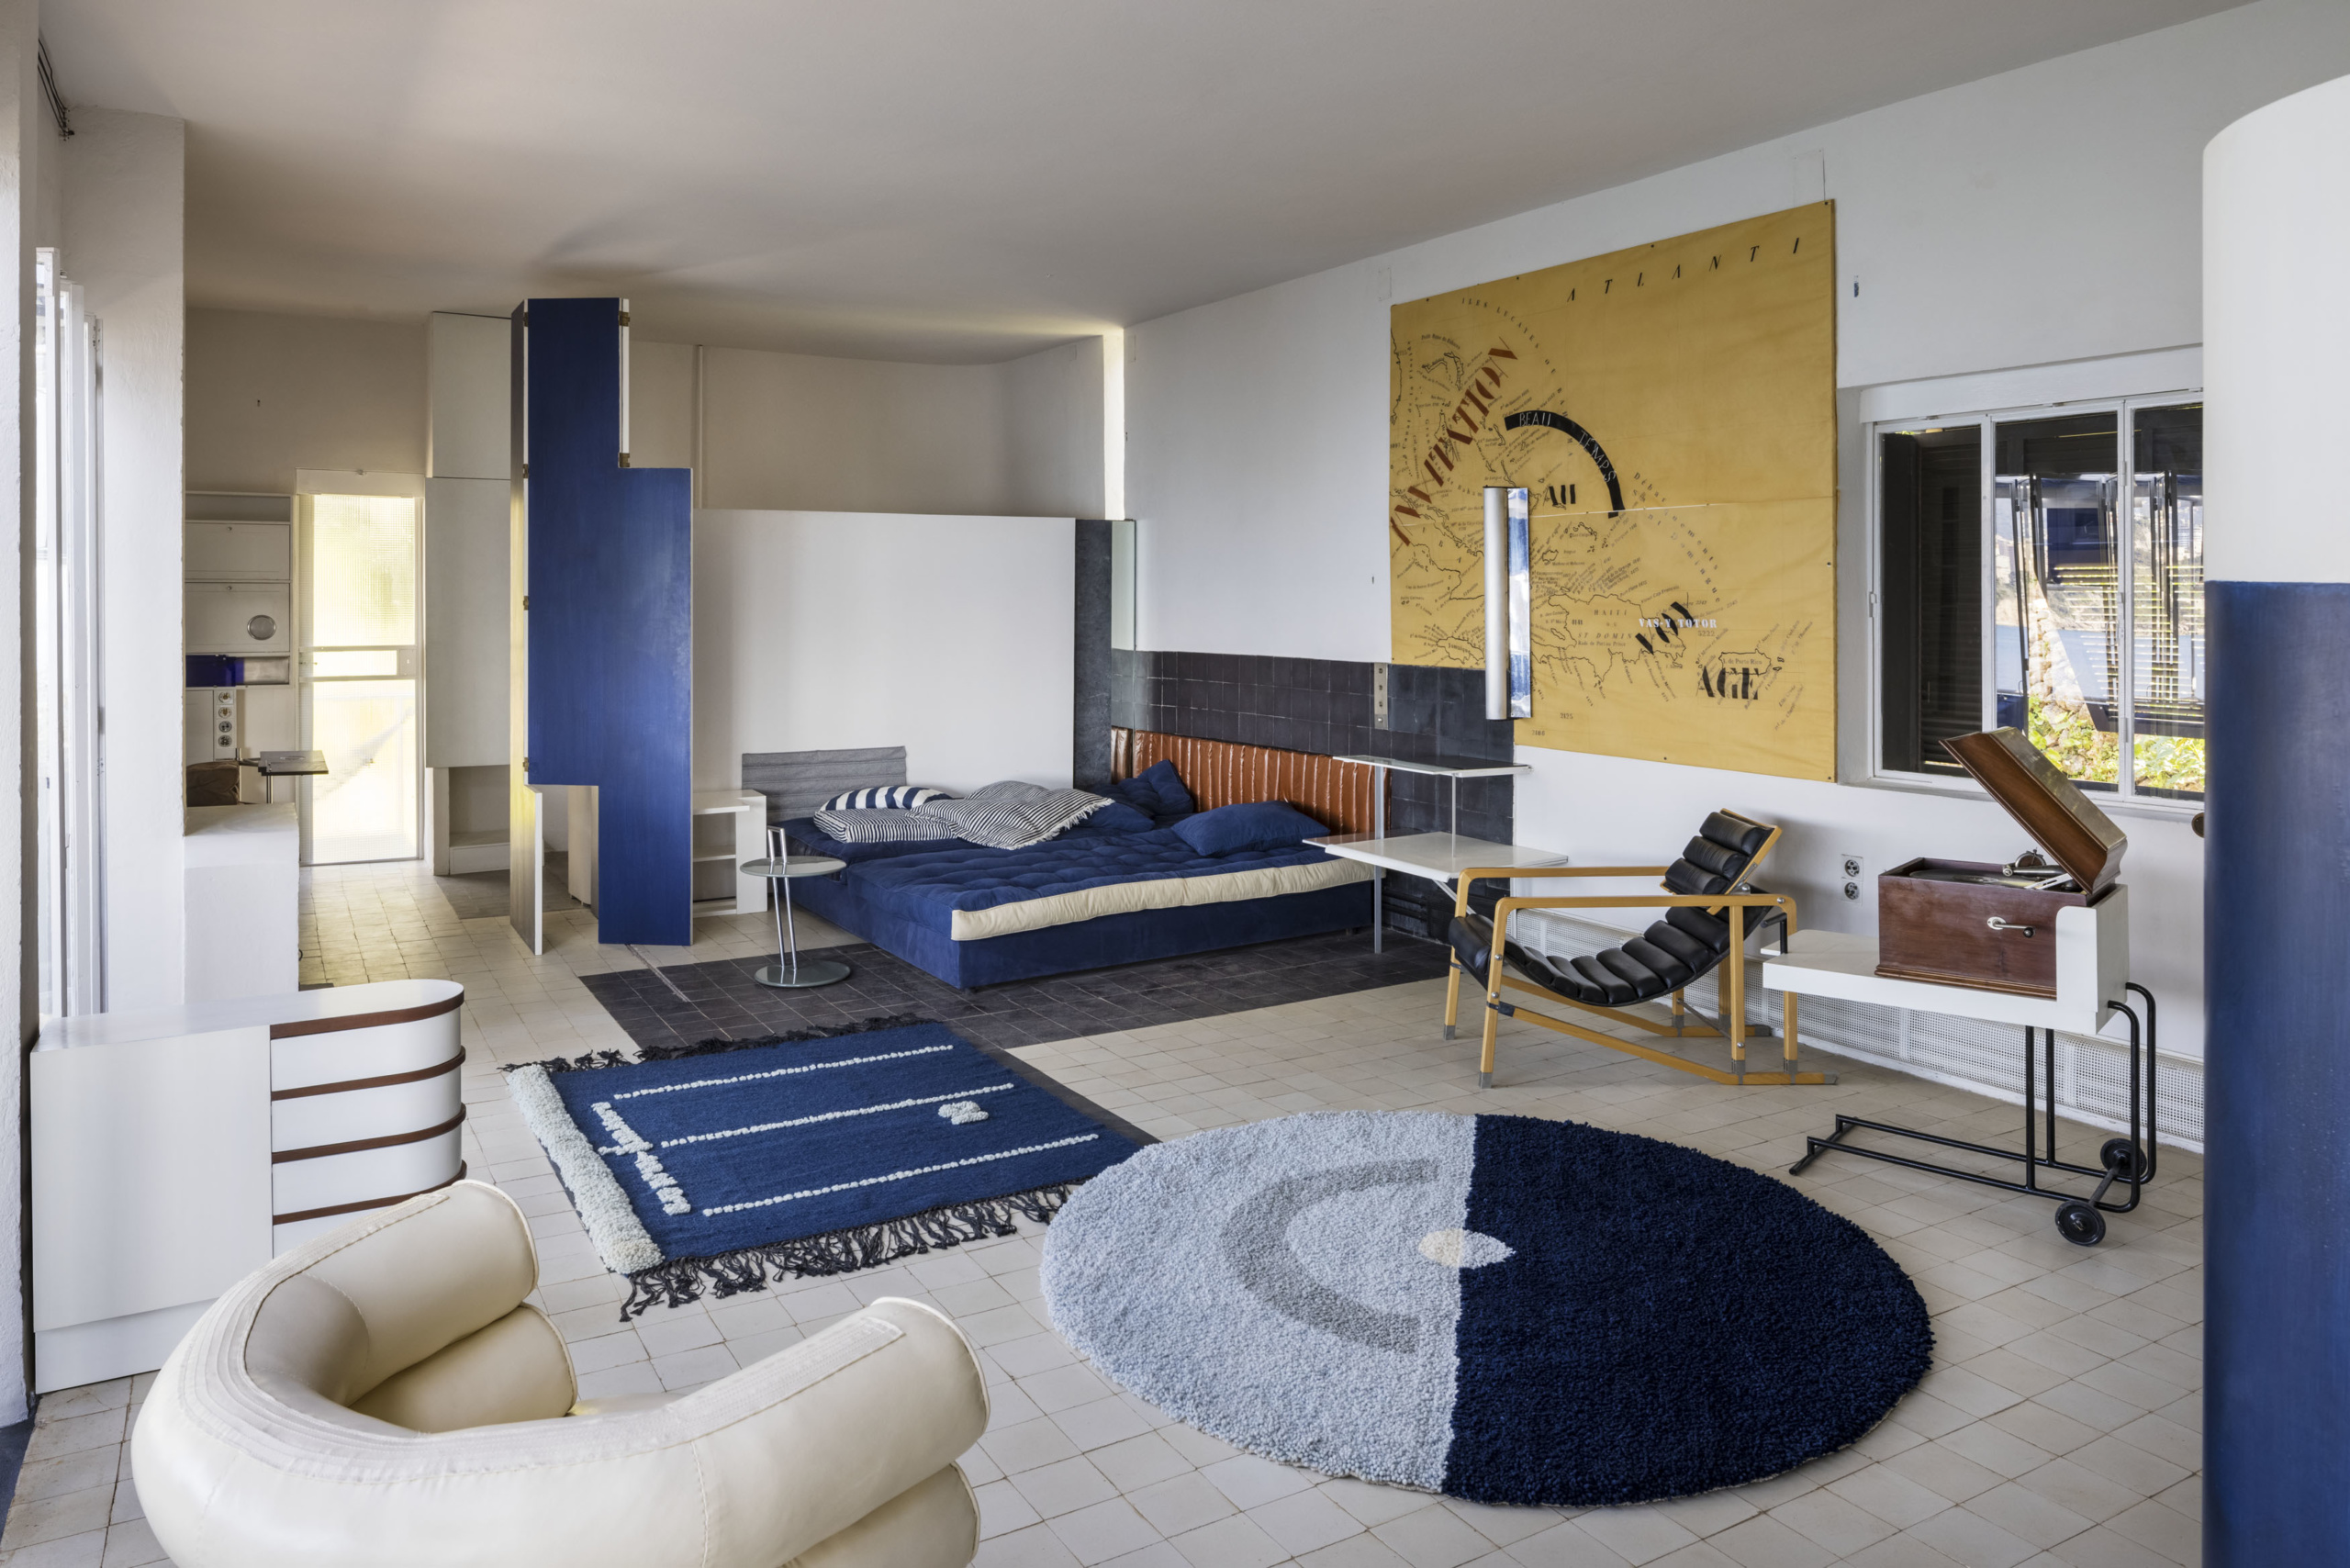 Bedroom decorated with contemporary pieces